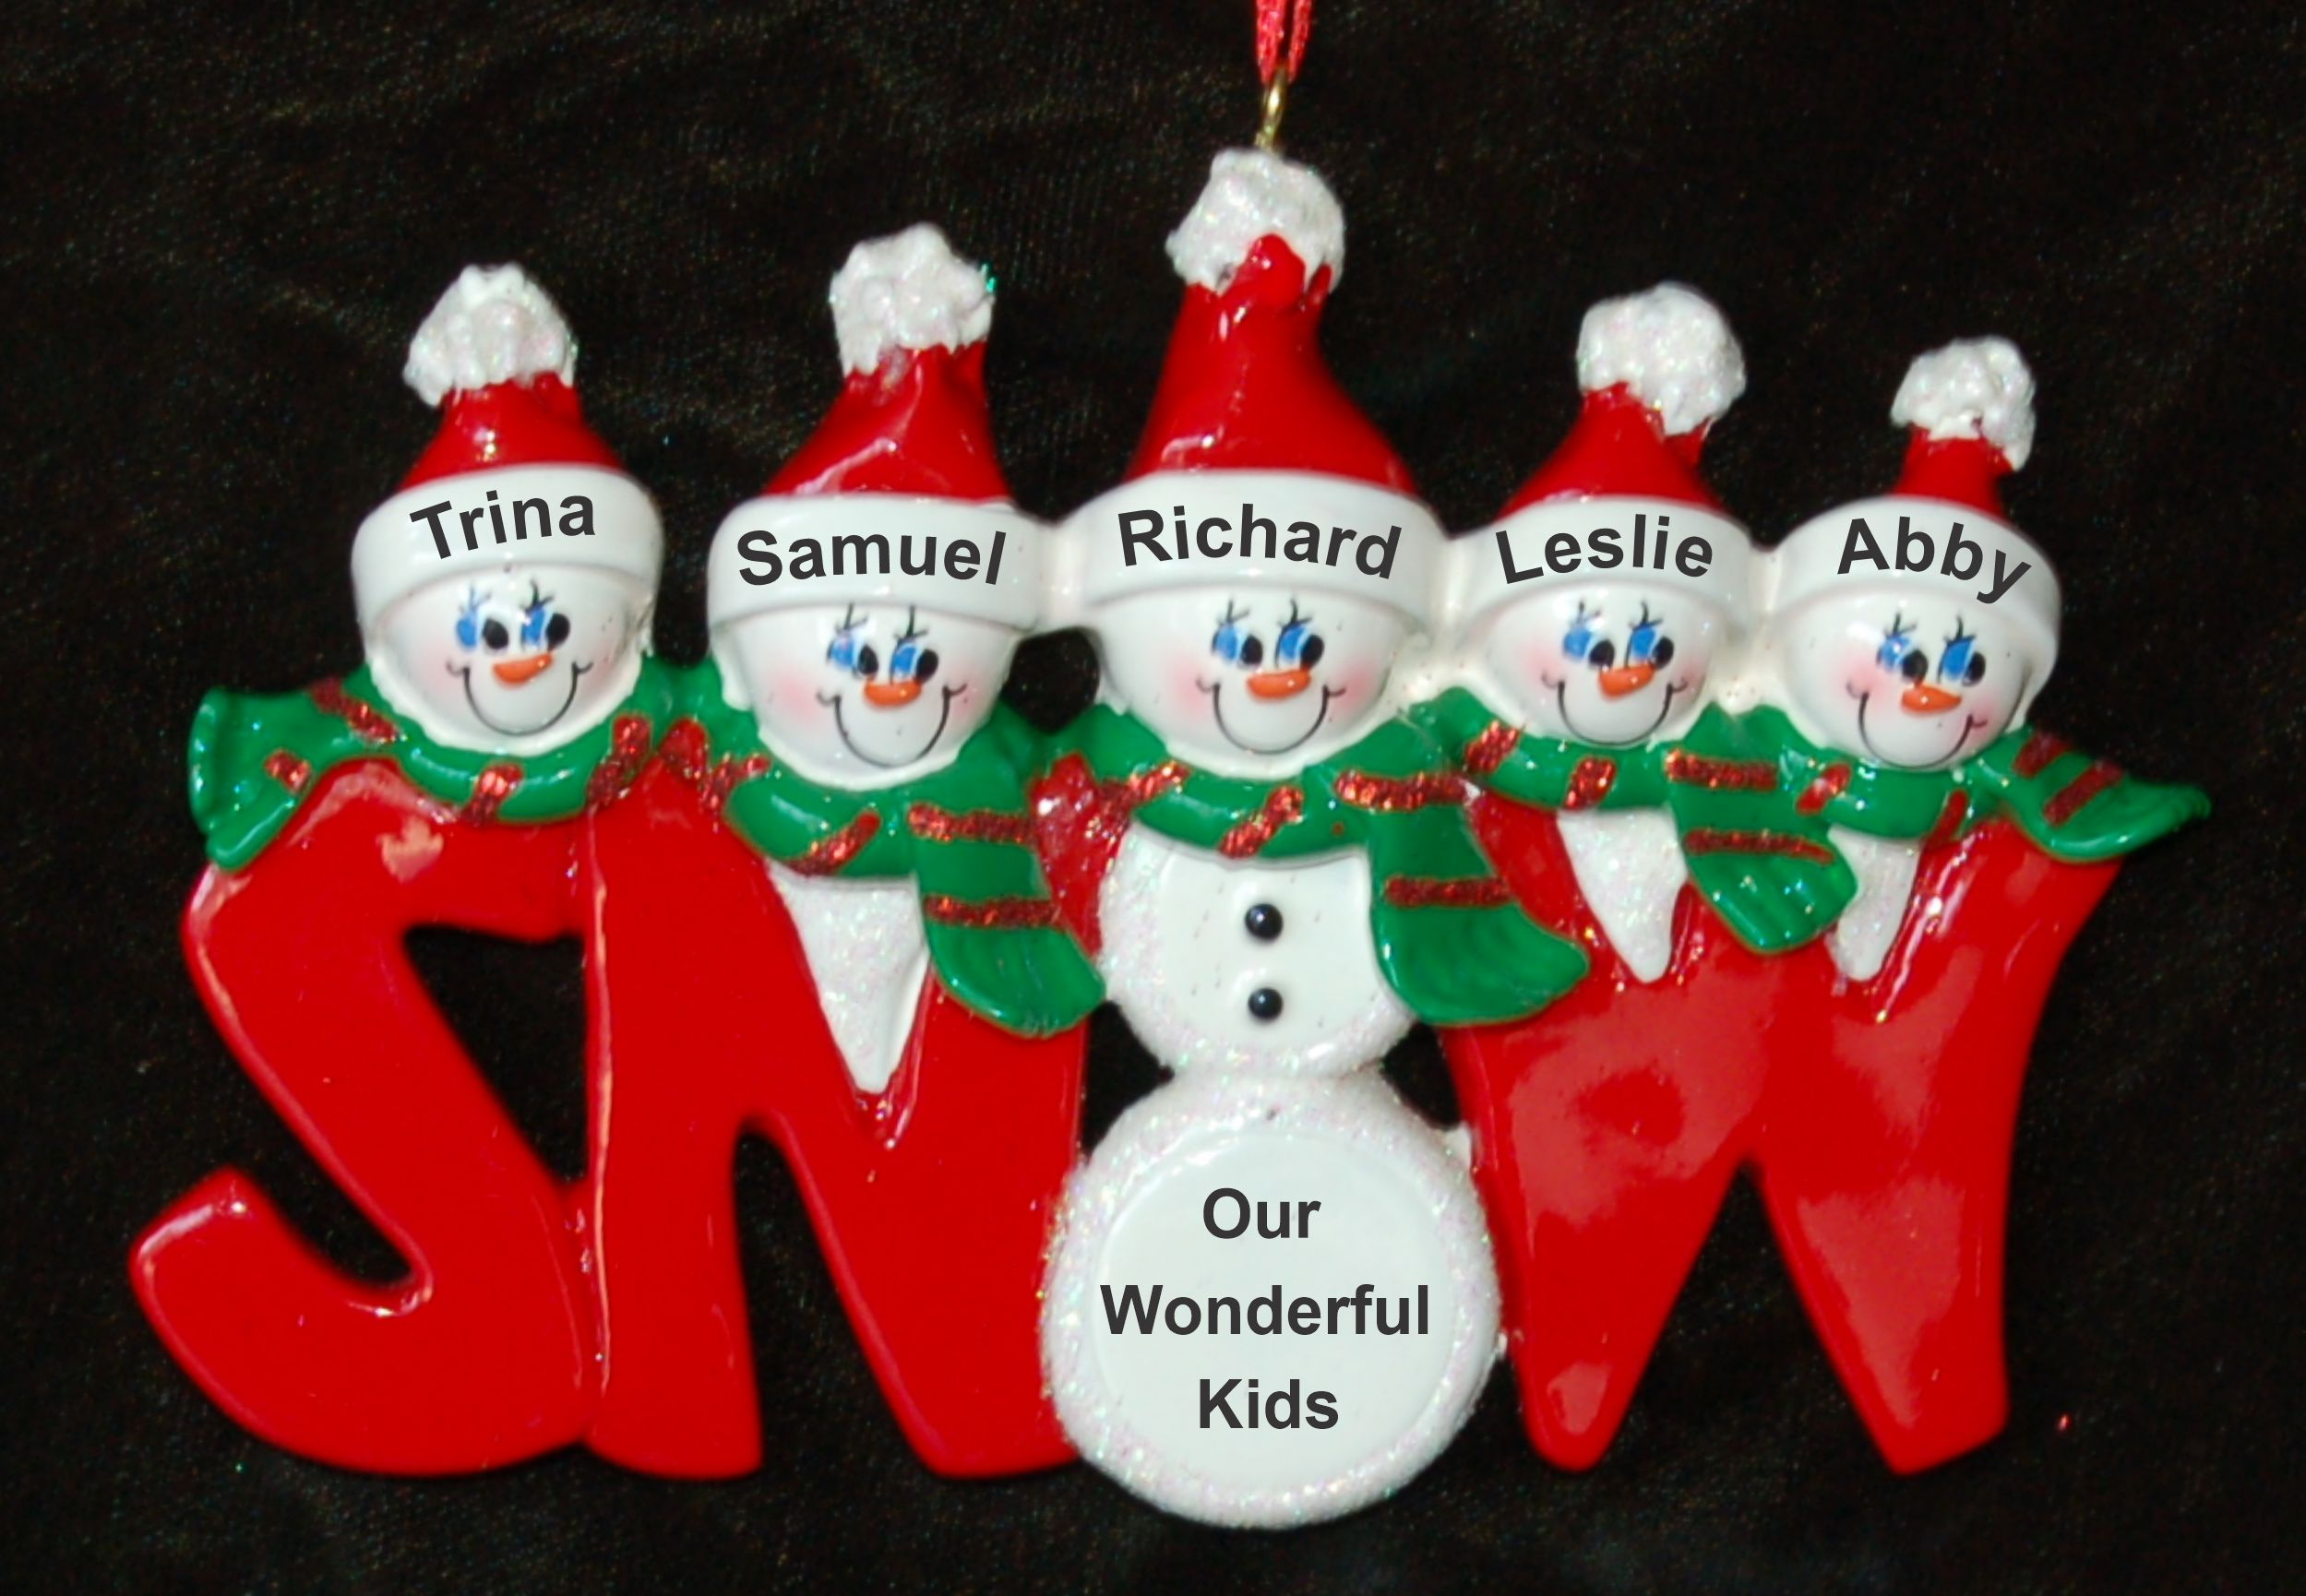 Personalized Family Christmas Ornament Snow Much Fun Just the Kids 5 by Russell Rhodes